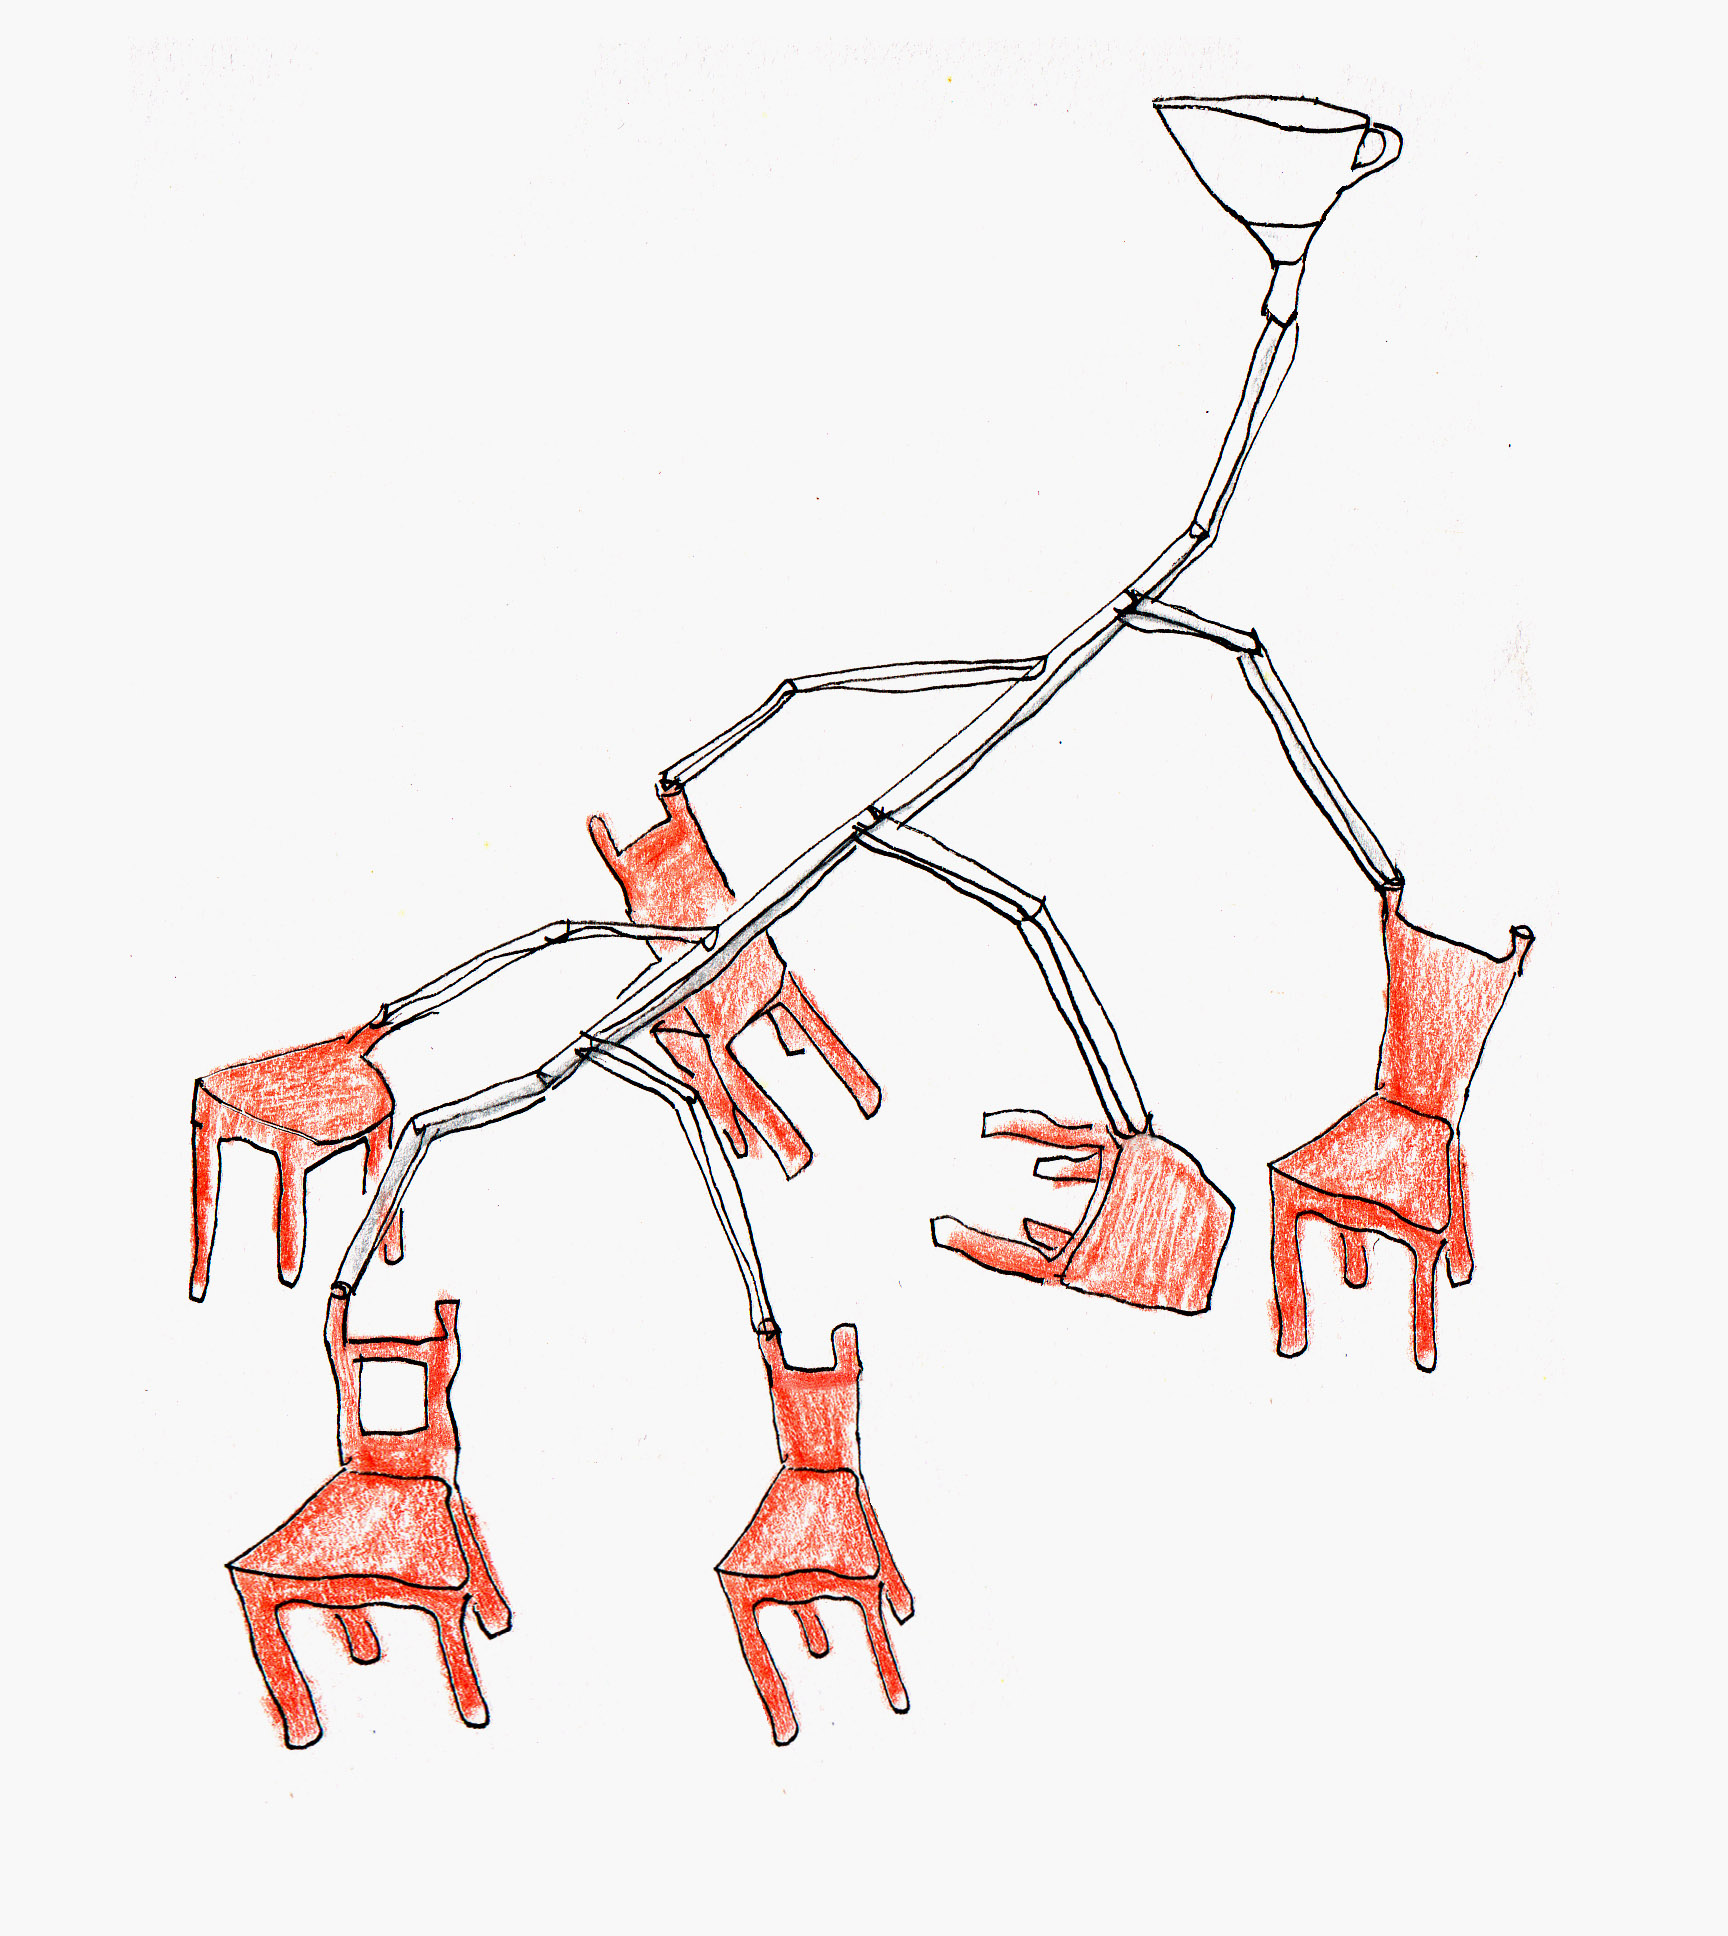 A concept sketch for the Long Drop showing chairs cast of central branch